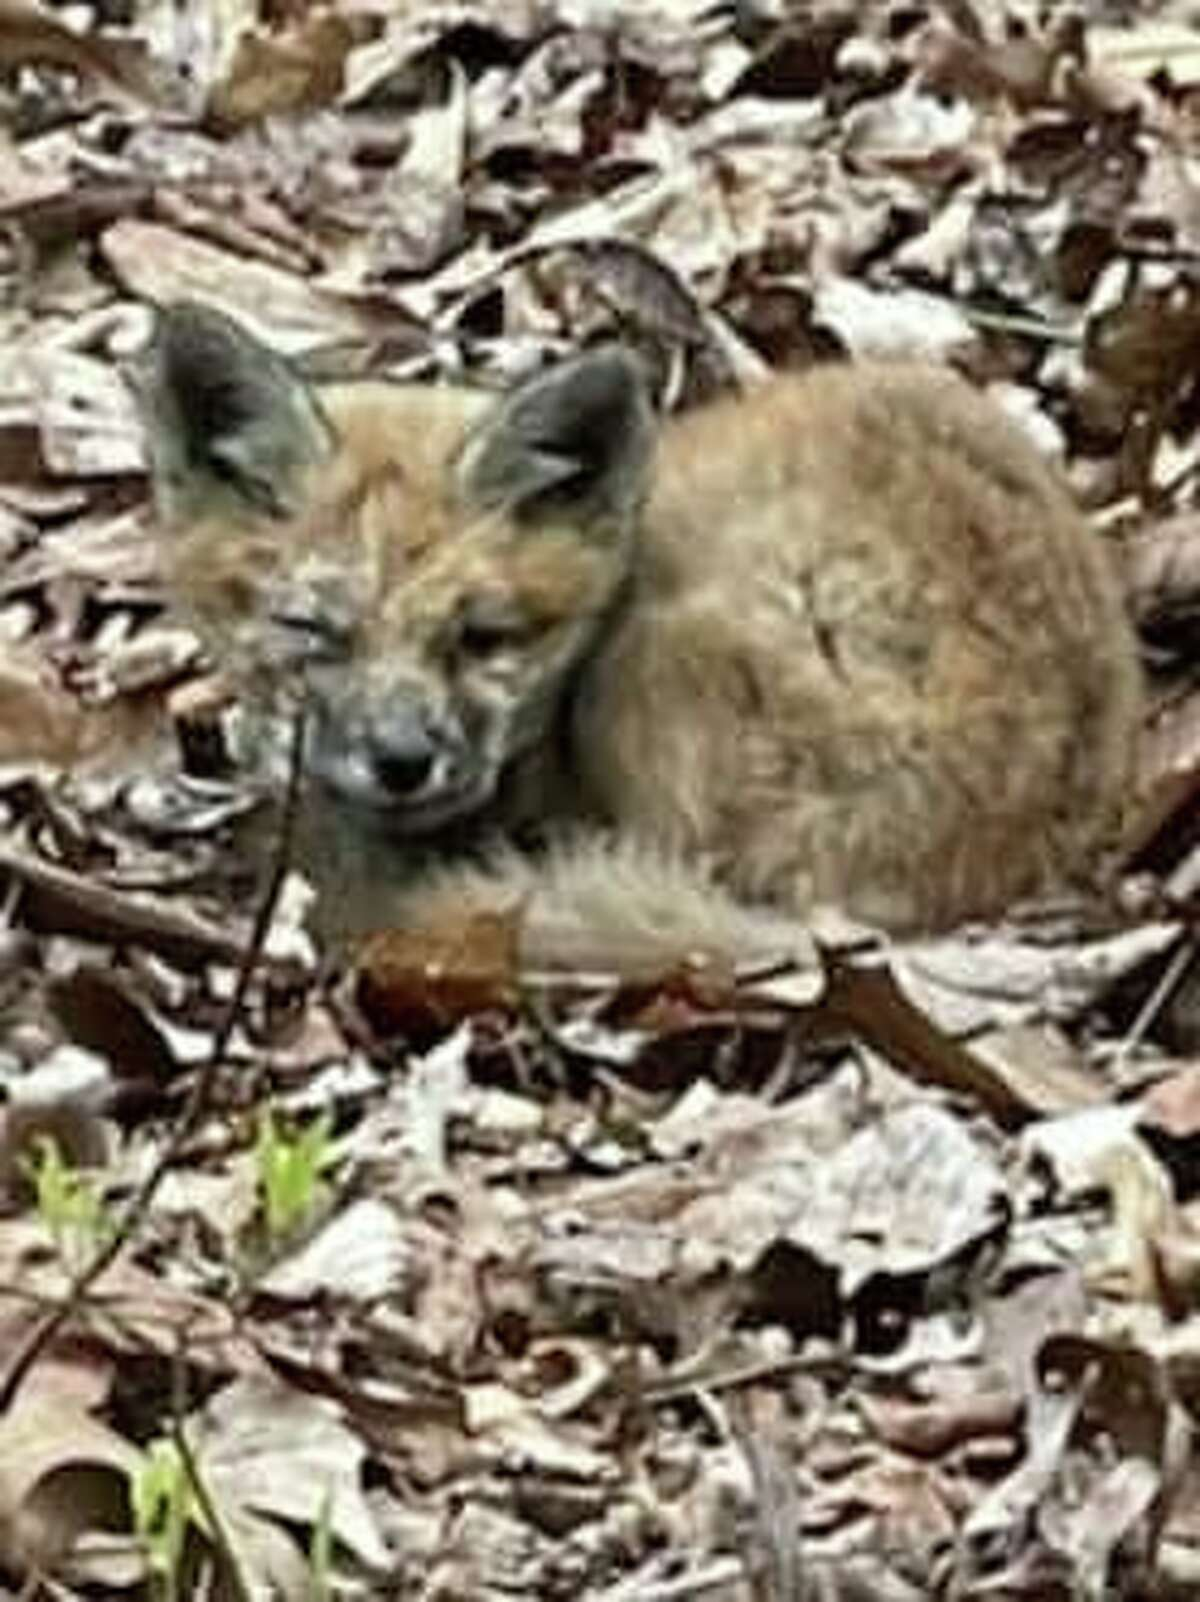 STAMFORD - City police helped rescue this baby fox Saturday, May 8, 2021. Police said the animal was turned over to an animal rehabilitation center